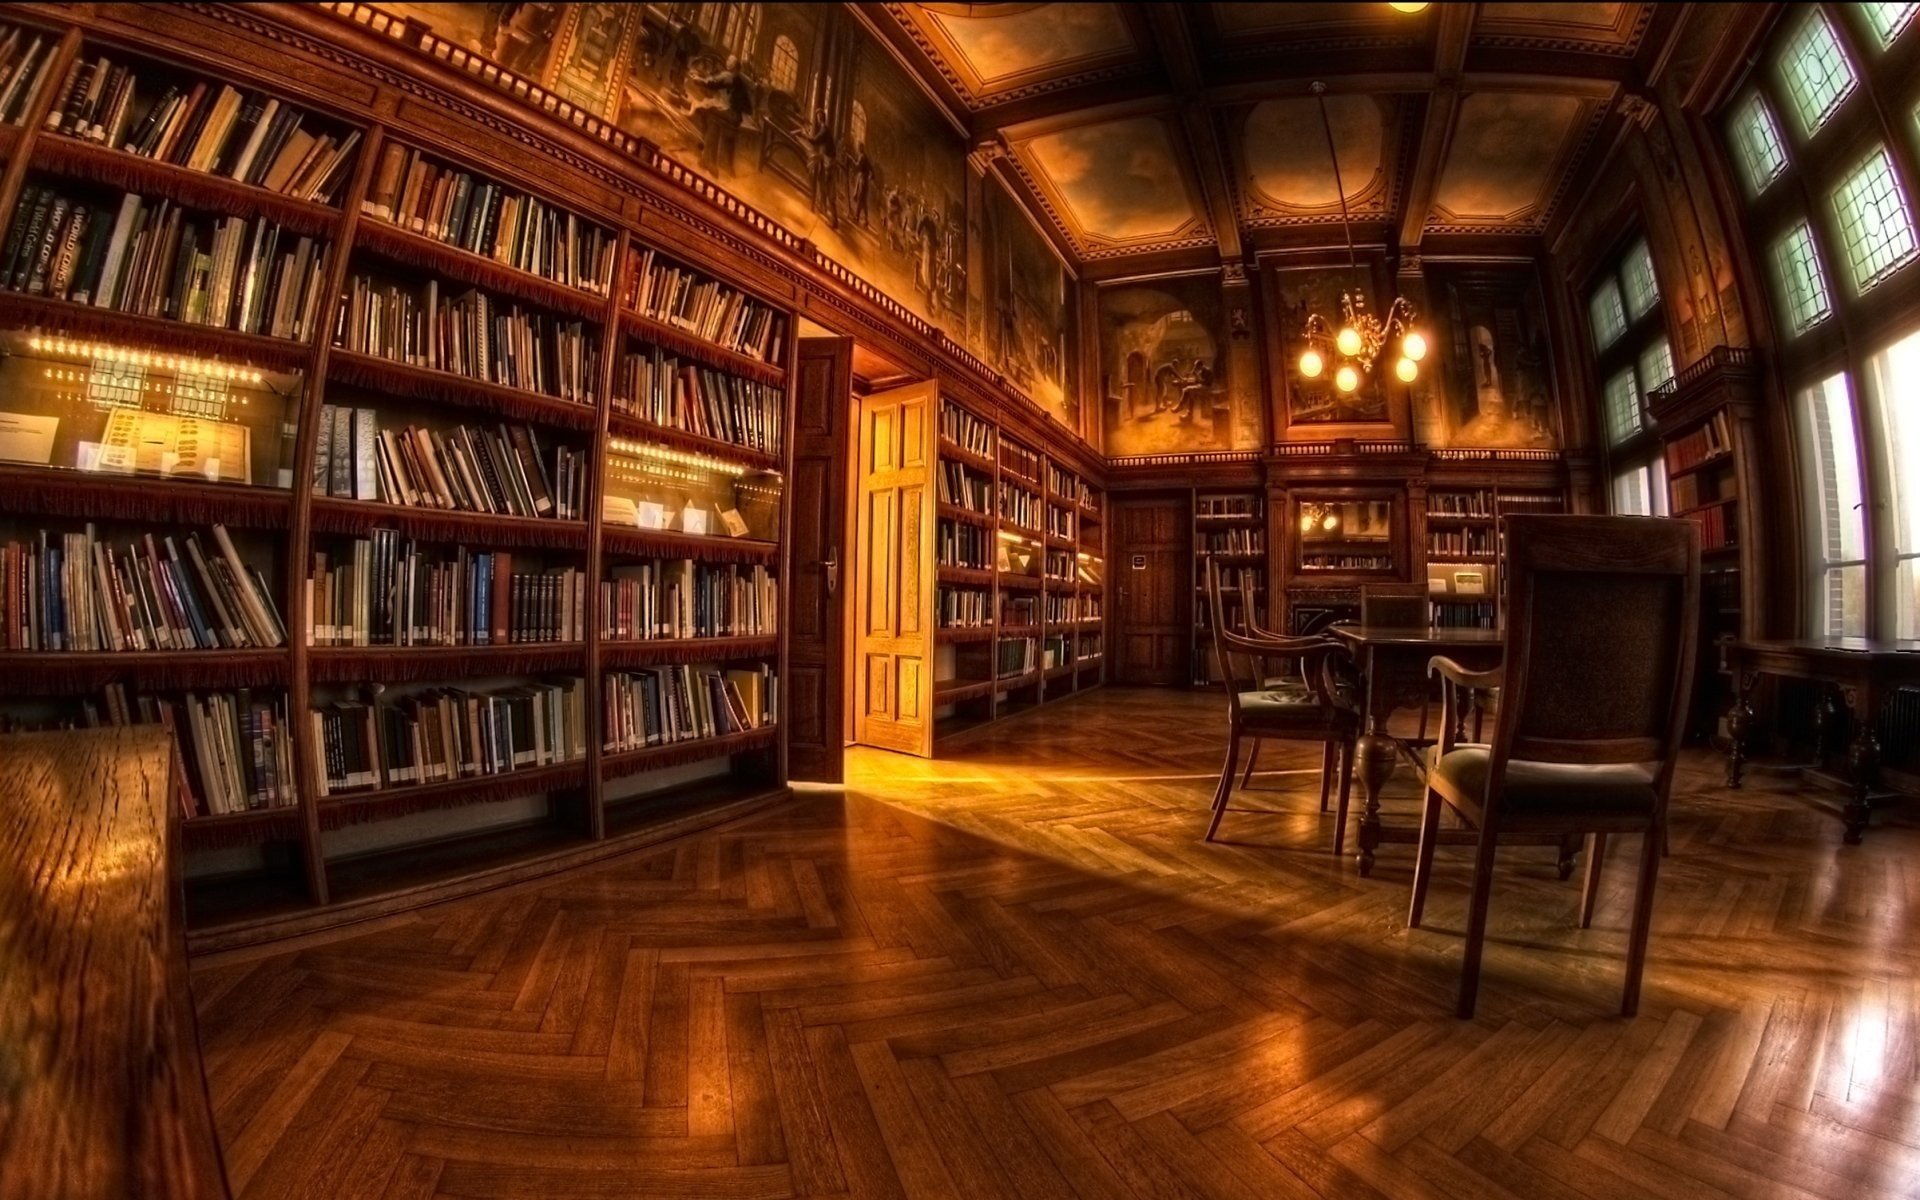 Wallpaper interior room library book desktop wallpaper Other 1920x1200